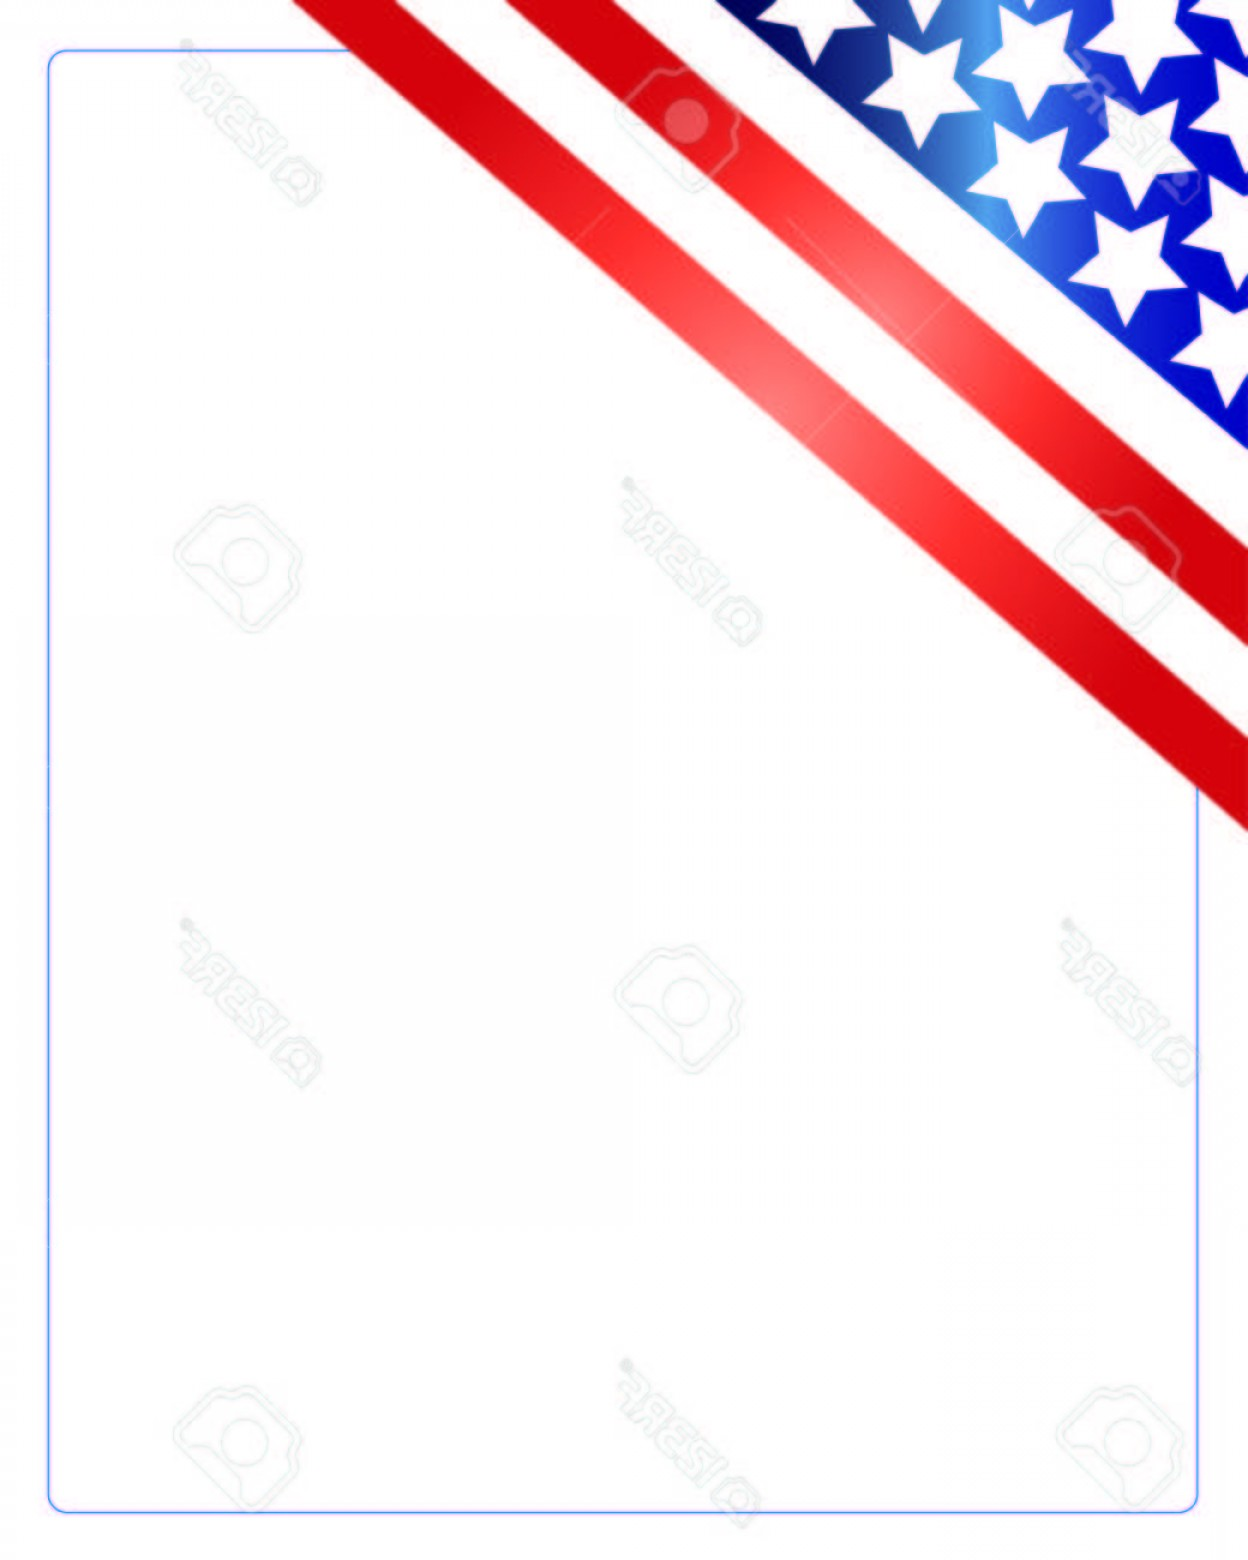 US Flag Vector Lines: Photostock Vector United States Of America Flag In The Corner Of The White Background Patriotic American Frame